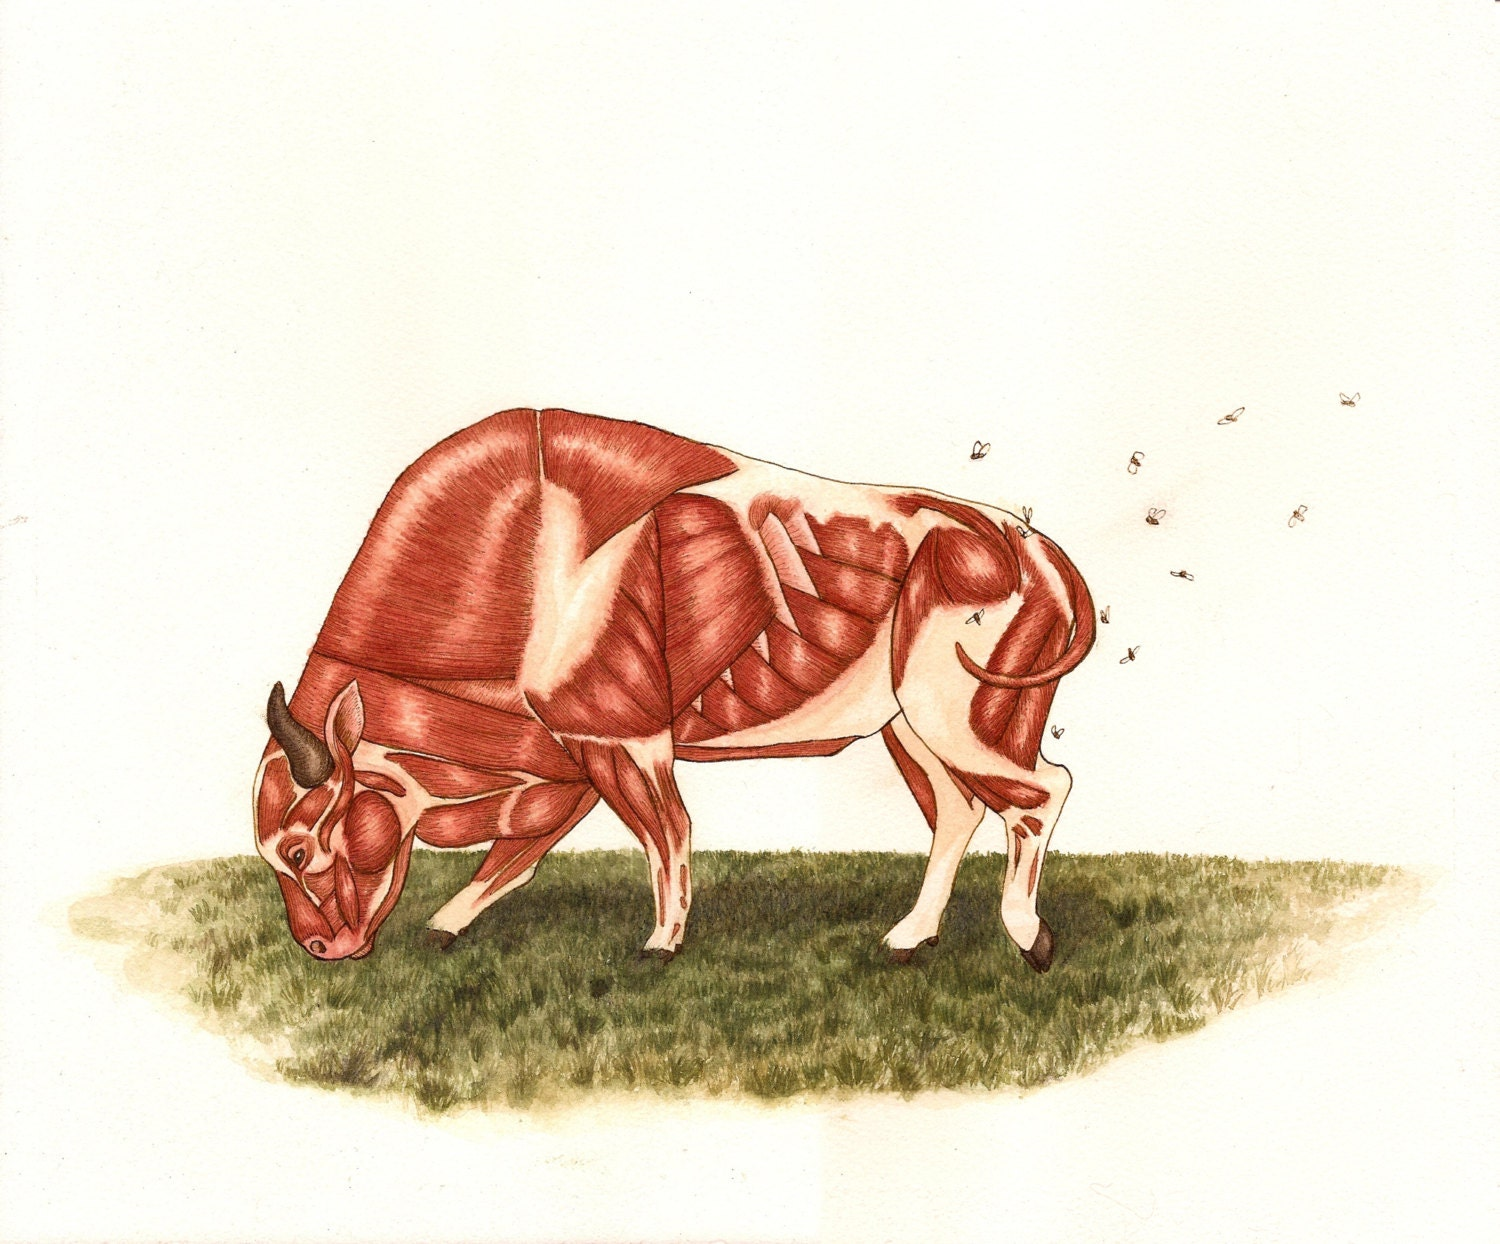 Rare Bison Without Skin Anatomy Illustration Drawing Print Of